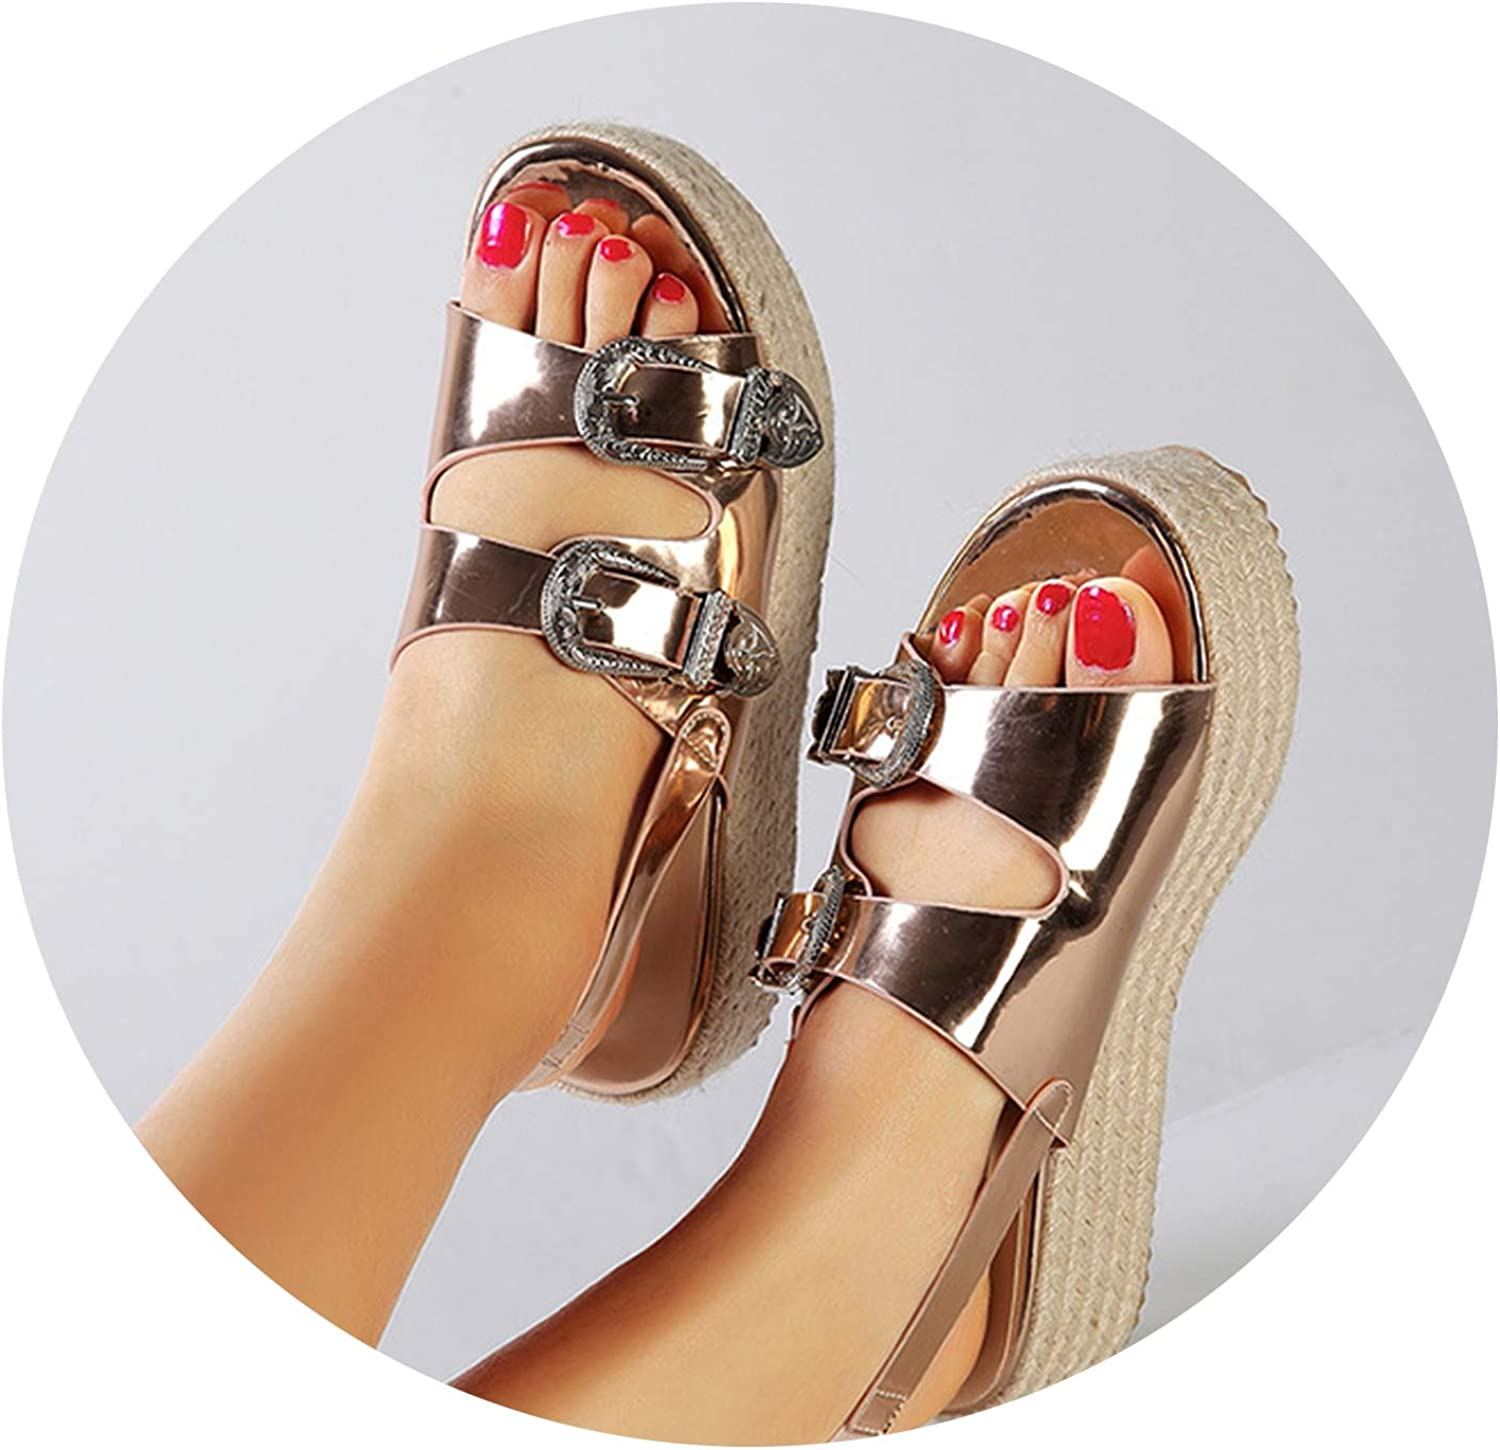 Luuvy-shop sandal High Wedge Beach Sandals High Heels Peep-Toe Buckle Platform shoes Woman Wedges shoes